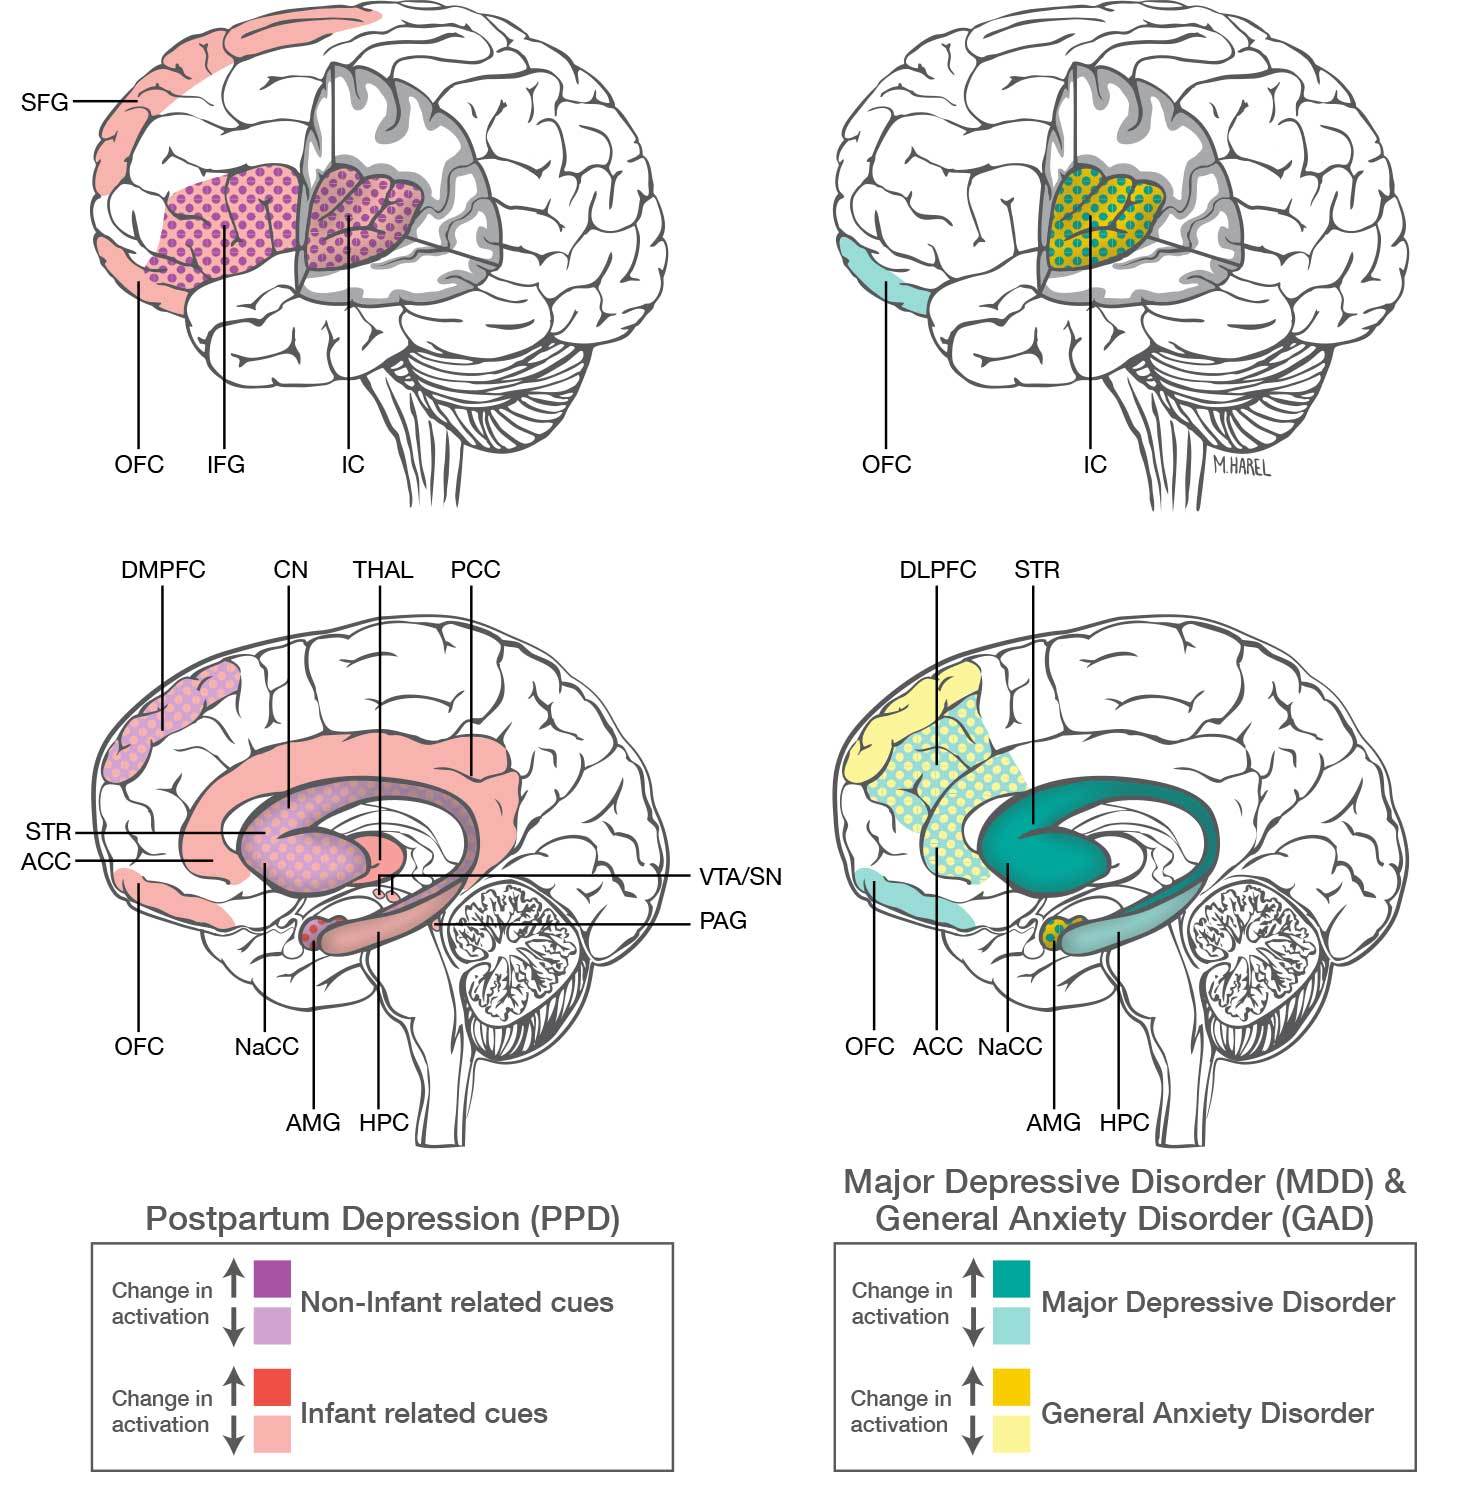 Postpartum Depression And Anxiety Distinct From Other Mood Disorders Brain Studies Suggest